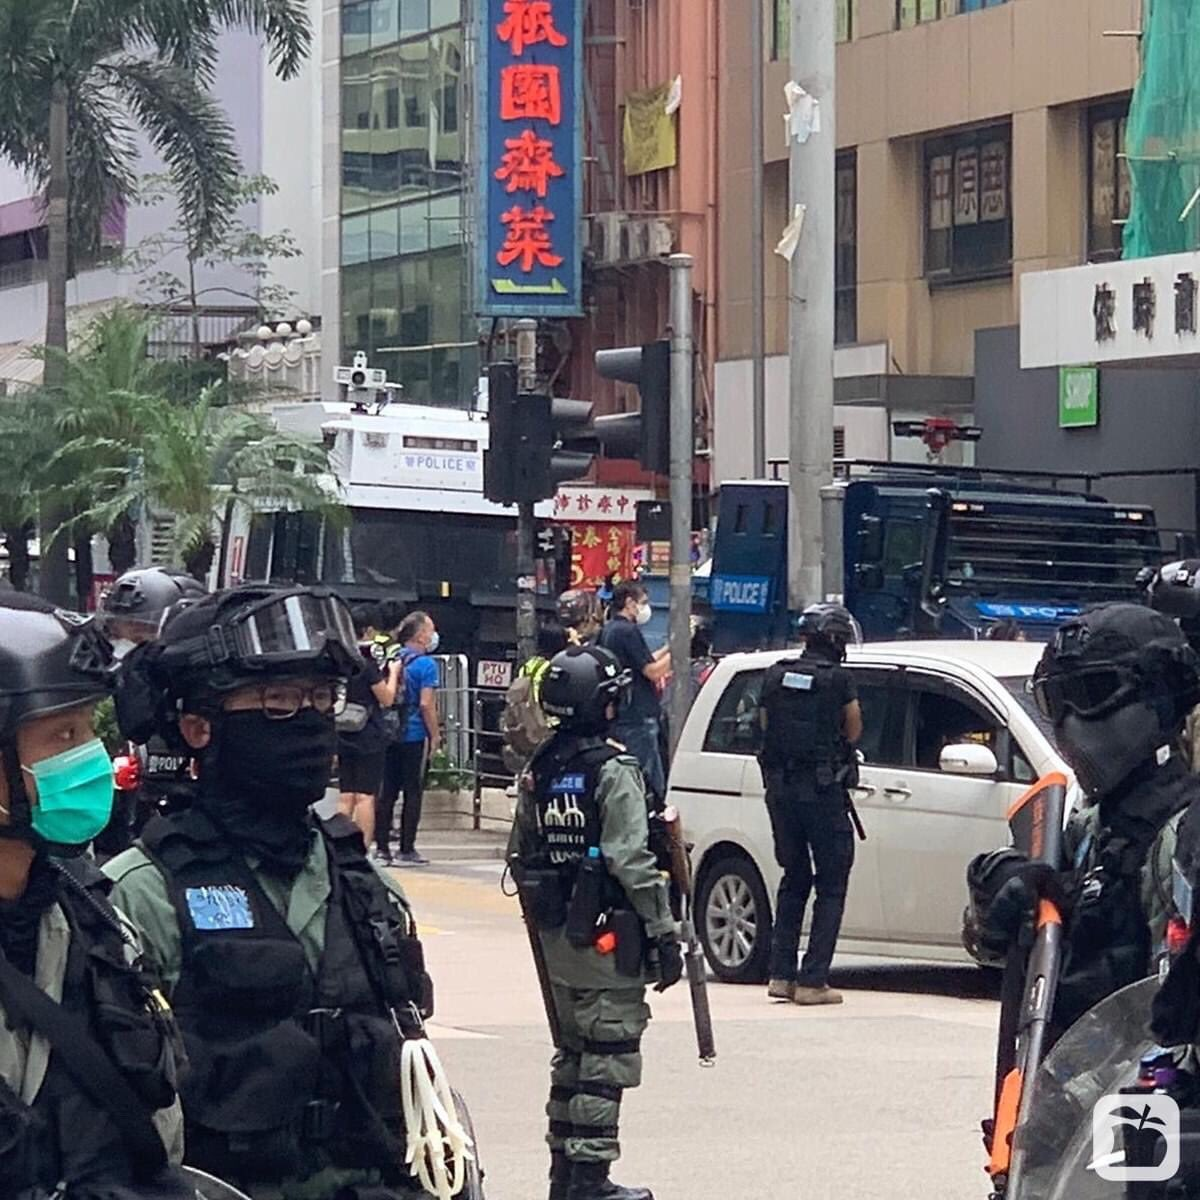 Armored vehicle and water cannon truck have arrived at #WanChai. As if #hkprotesters were real terrorists. #hkpolice #HKPoliceState #HKPoliceTerrorists #Soshk #Standwithhongkong @SolomonYue @lukedepulford  @benedictrogers @HawleyMO #黑警 #警暴pic.twitter.com/XWz5NAkFeJ